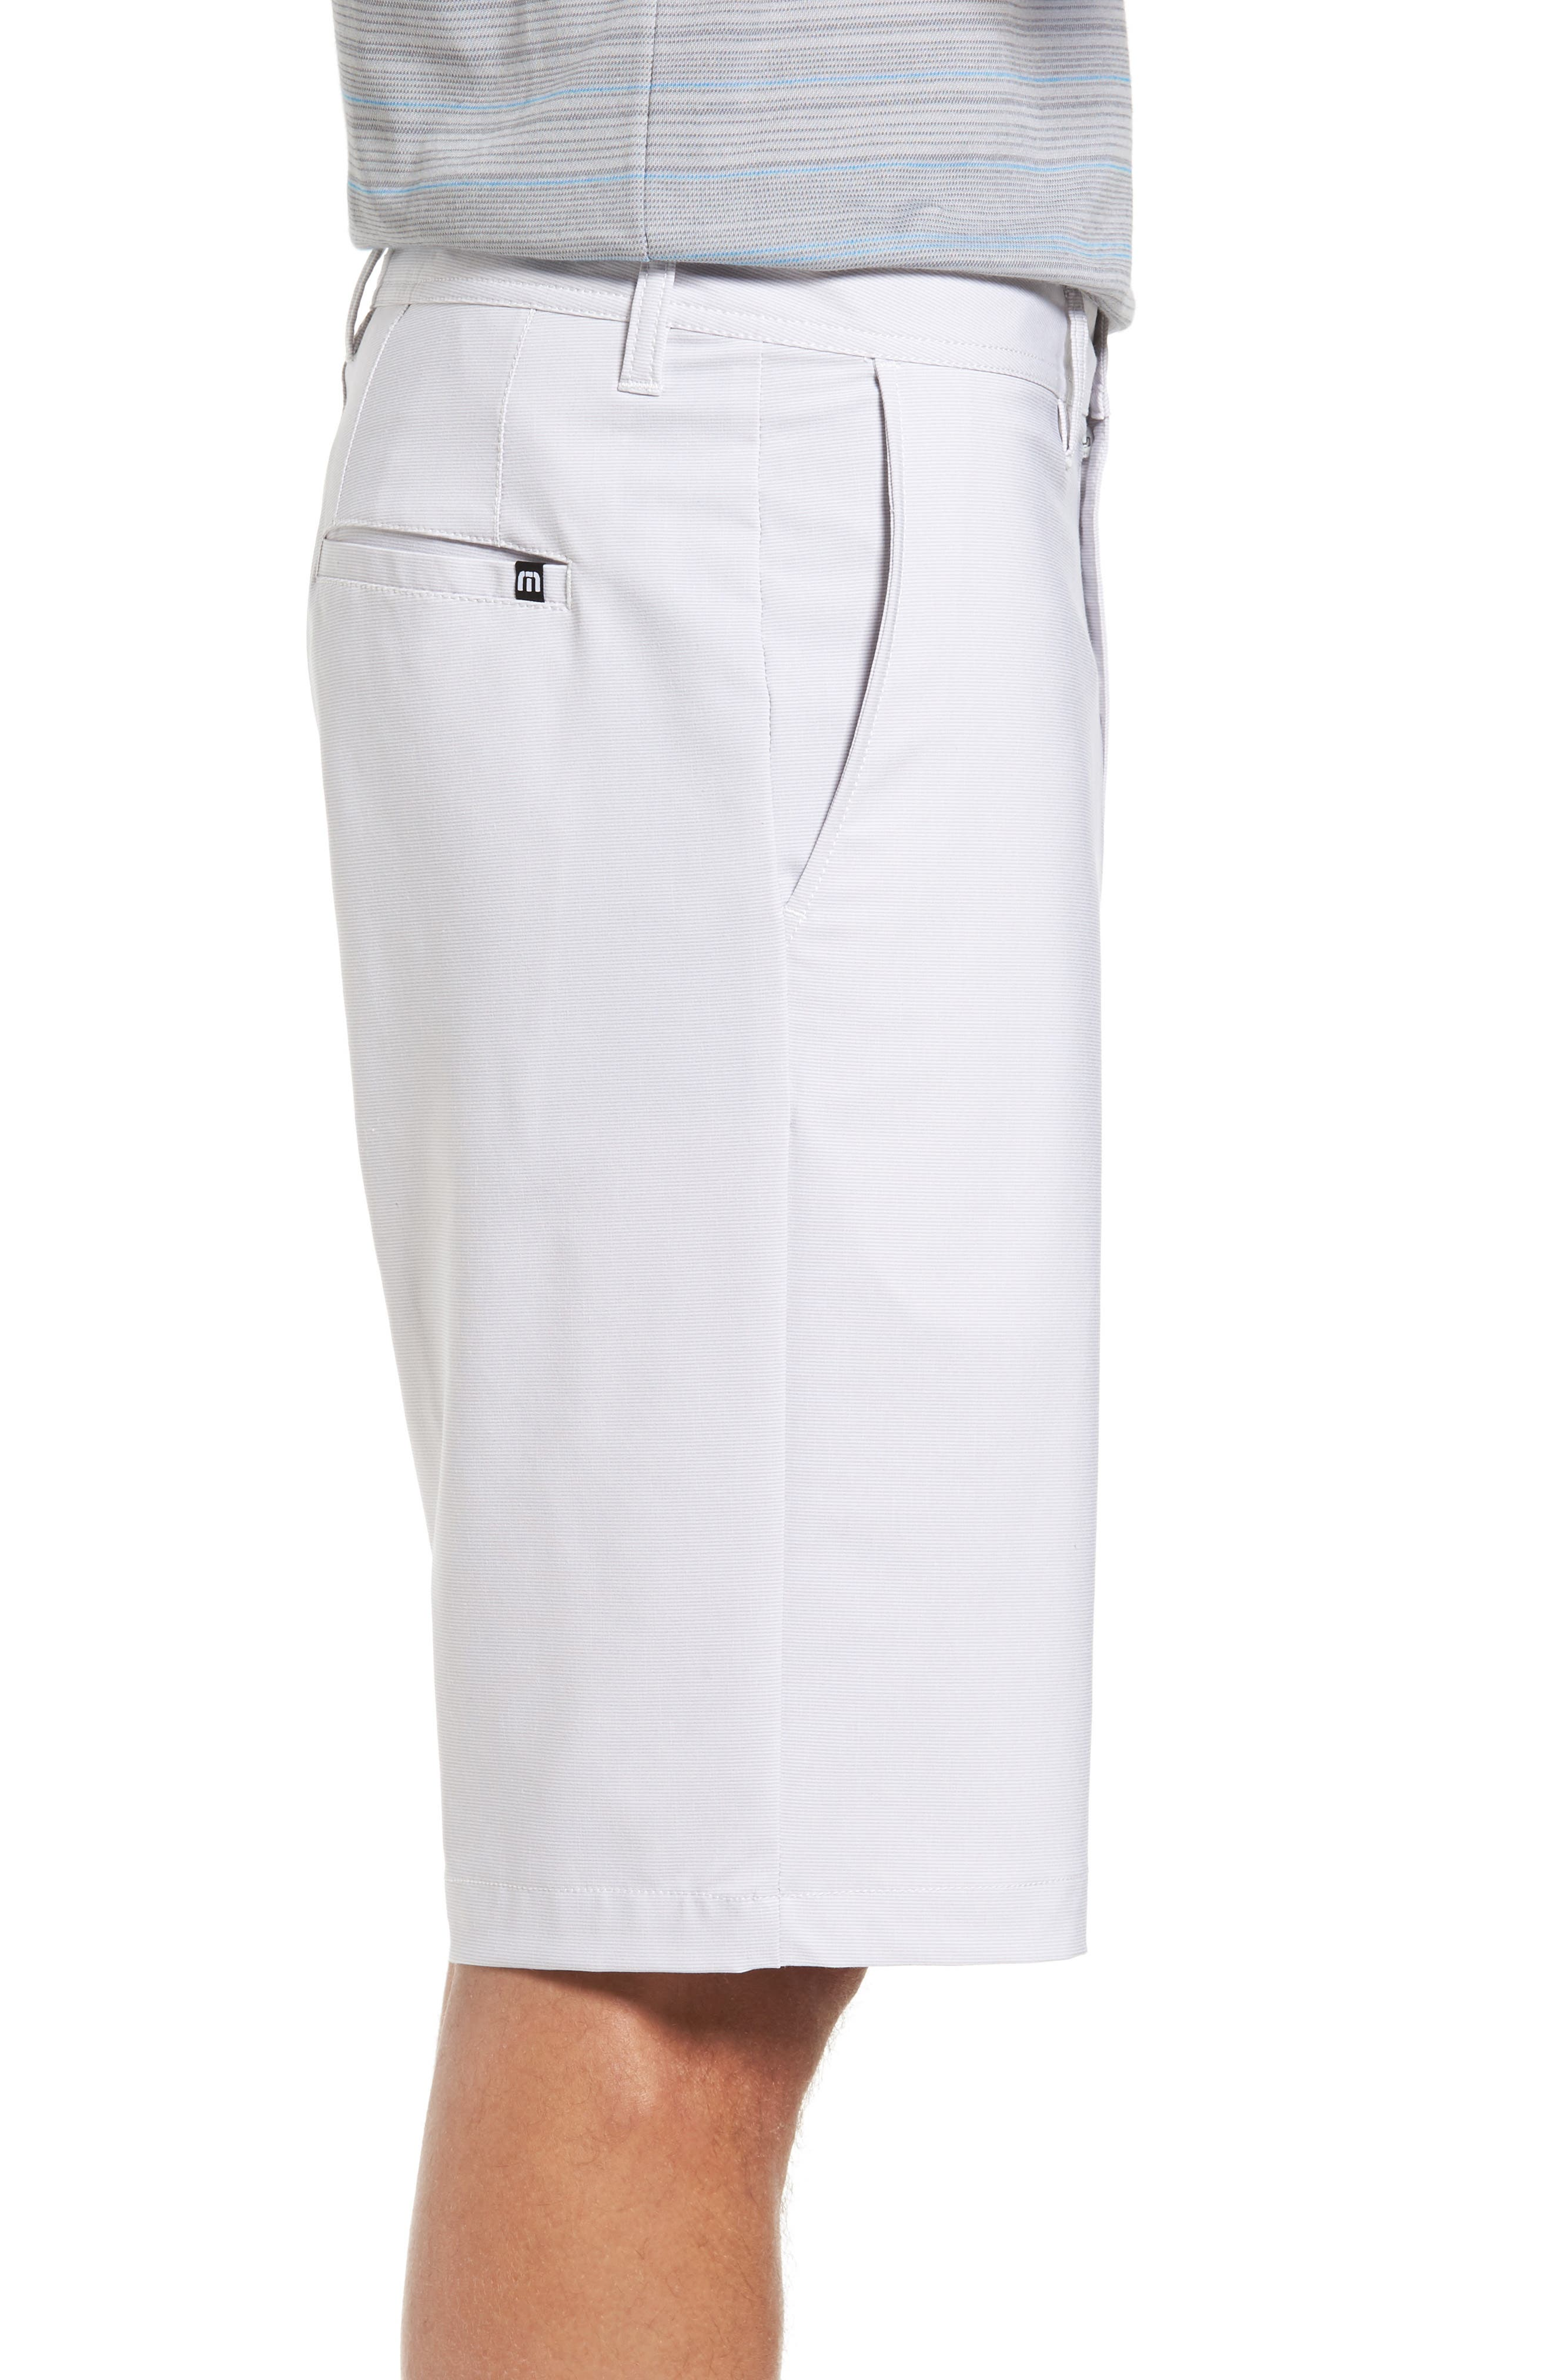 Gilley Stretch Golf Shorts,                             Alternate thumbnail 3, color,                             020